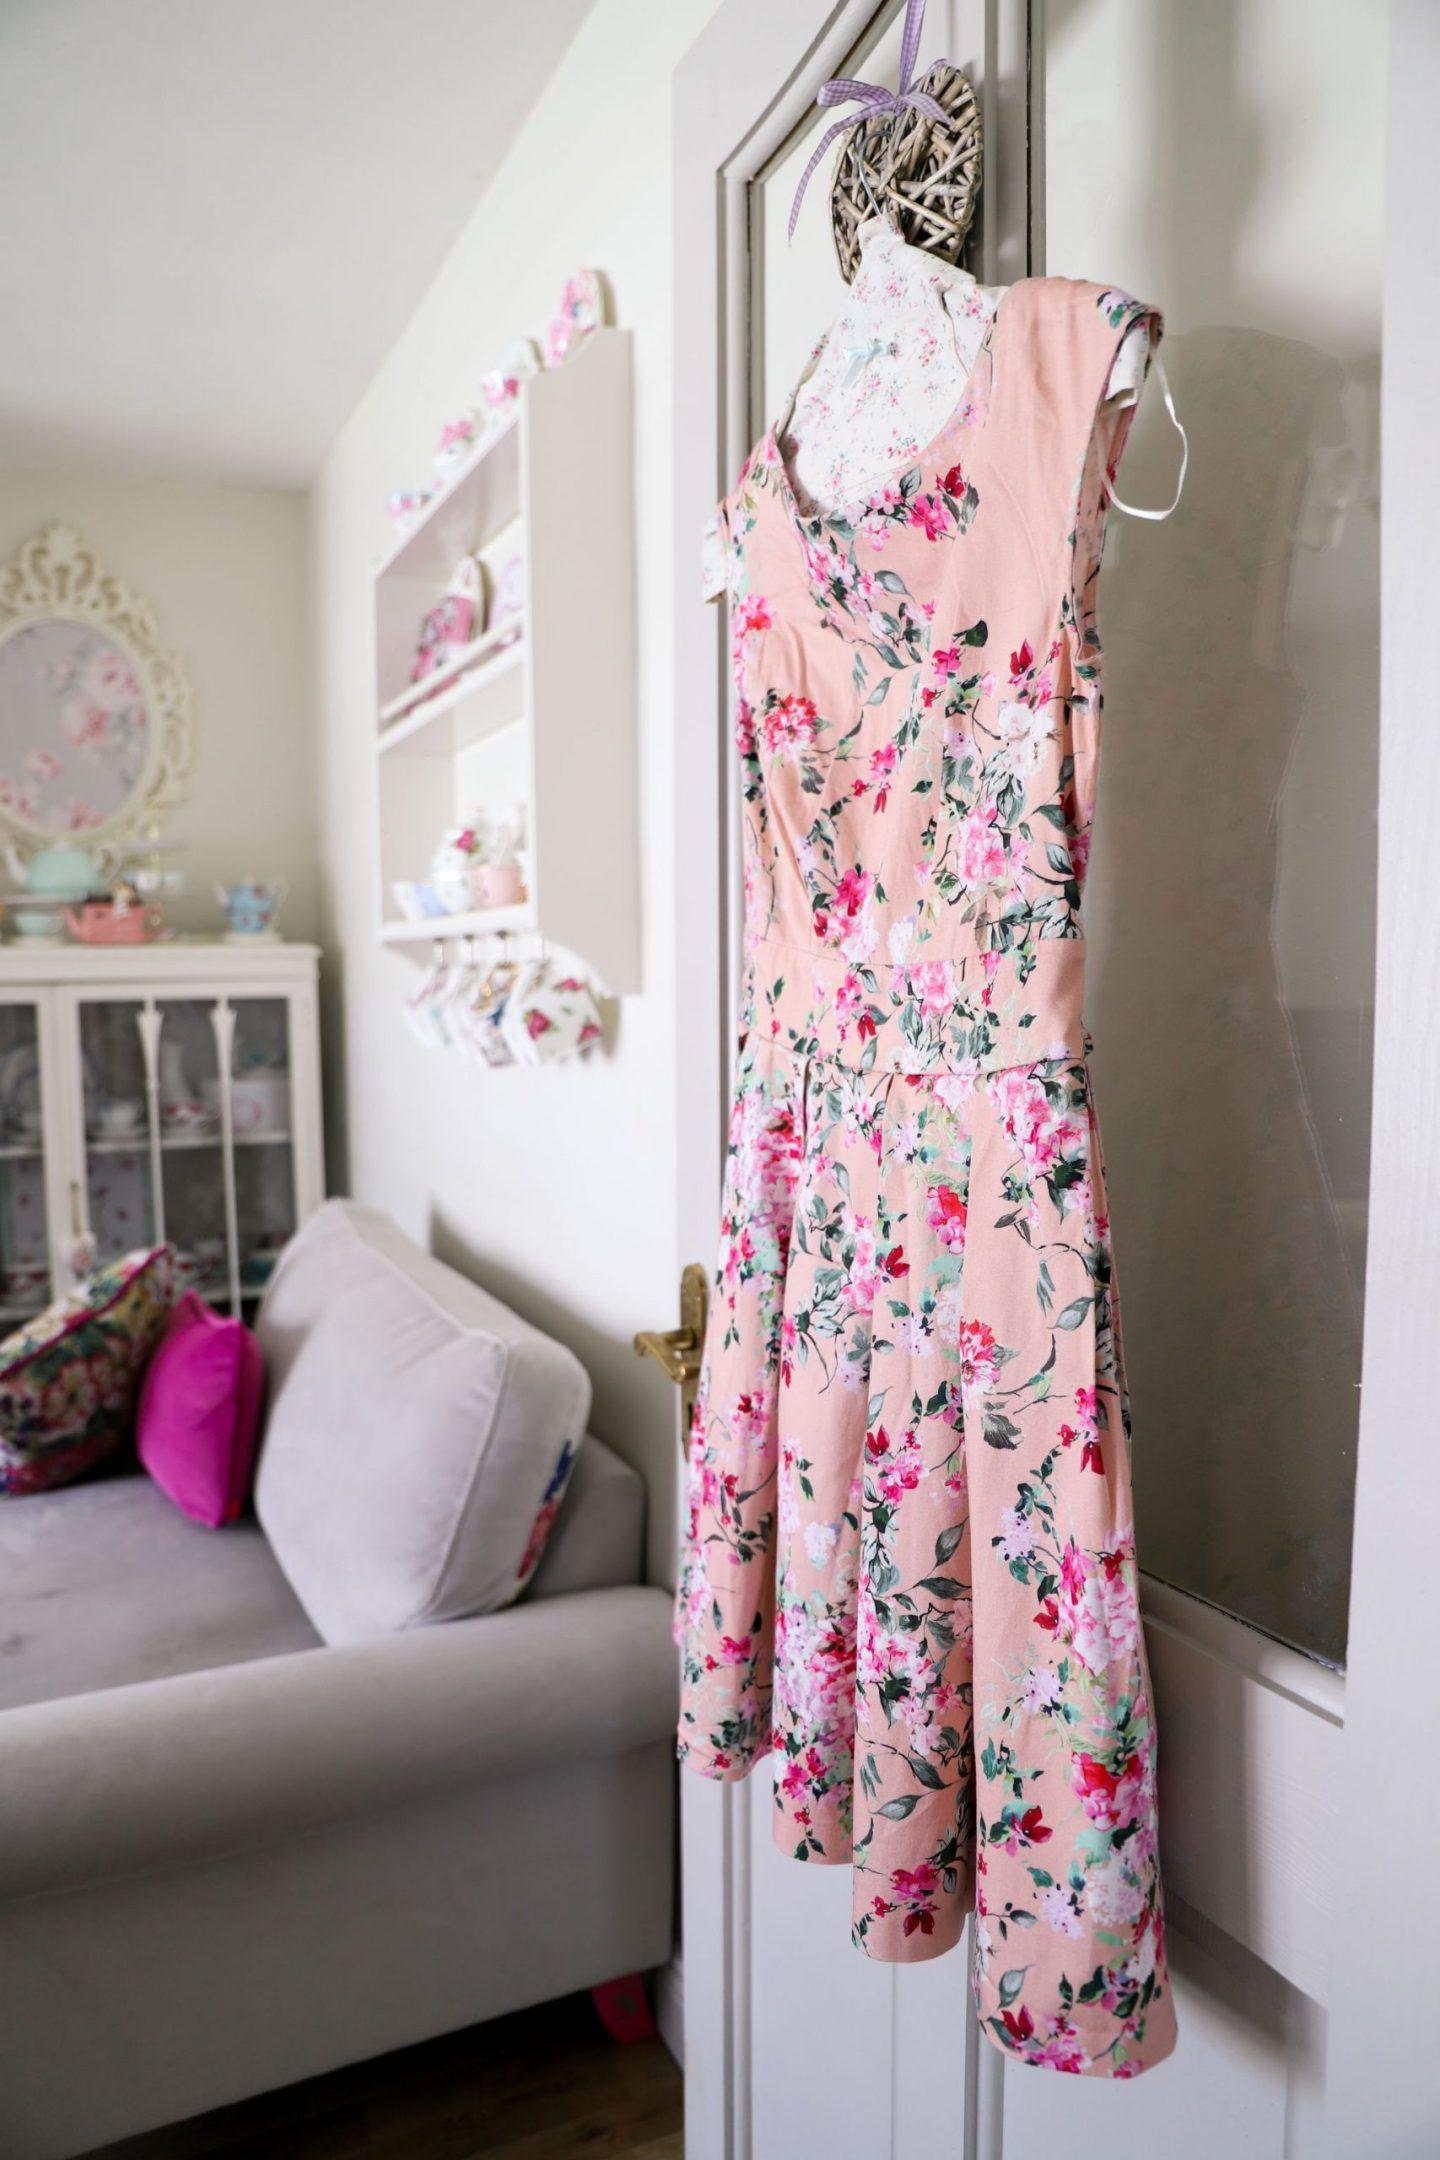 How To Upcycle A Dress Into New Items